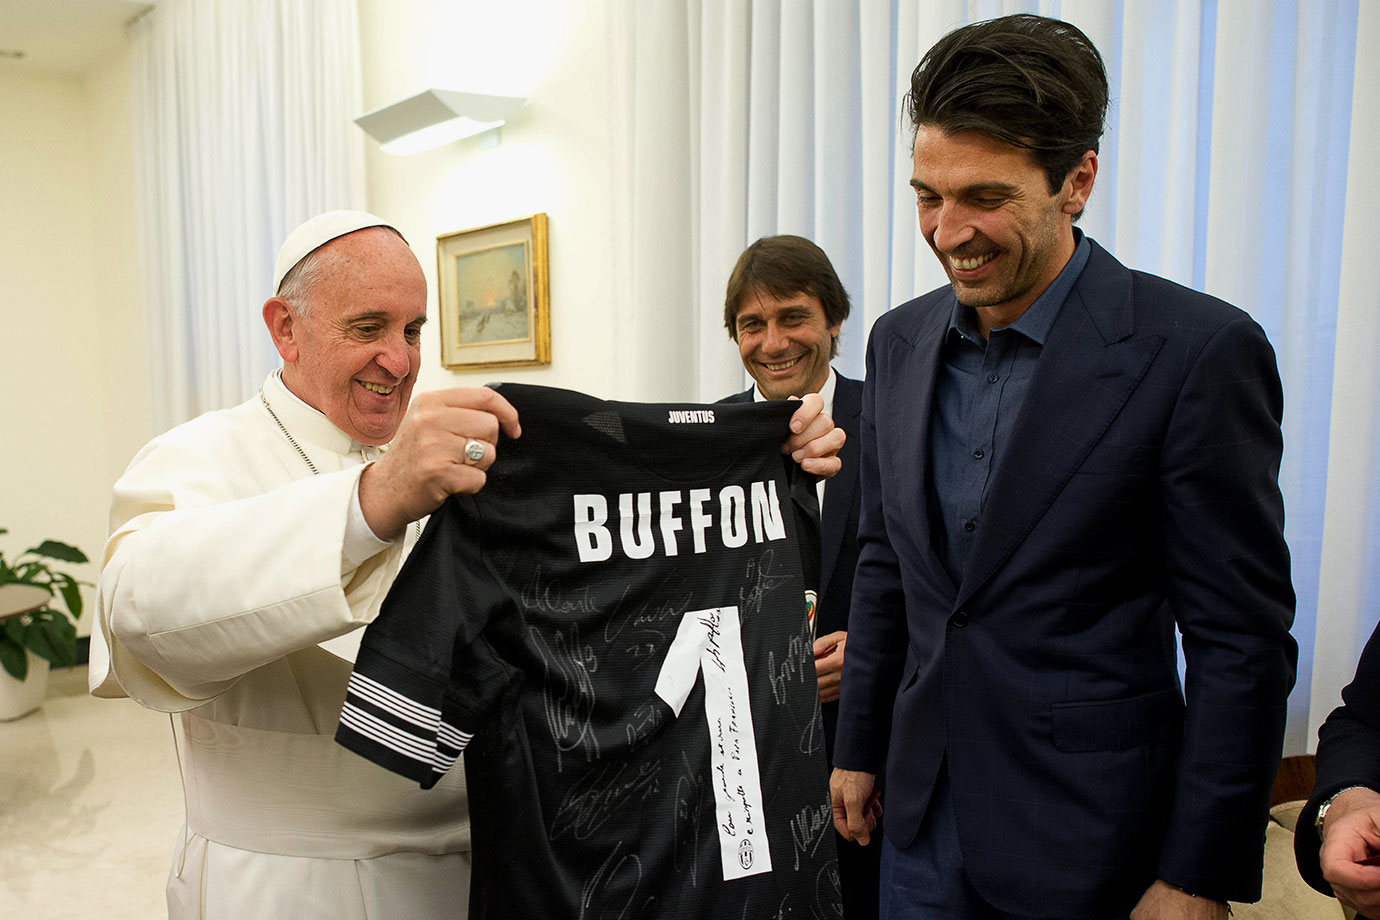 Pope Francis receives an autographed Juventus jersey from captain Gianluigi Buffon (right) and coach Antonio Conte at the end of their audience at The Vatican on May 21, 2013 in Vatican City.